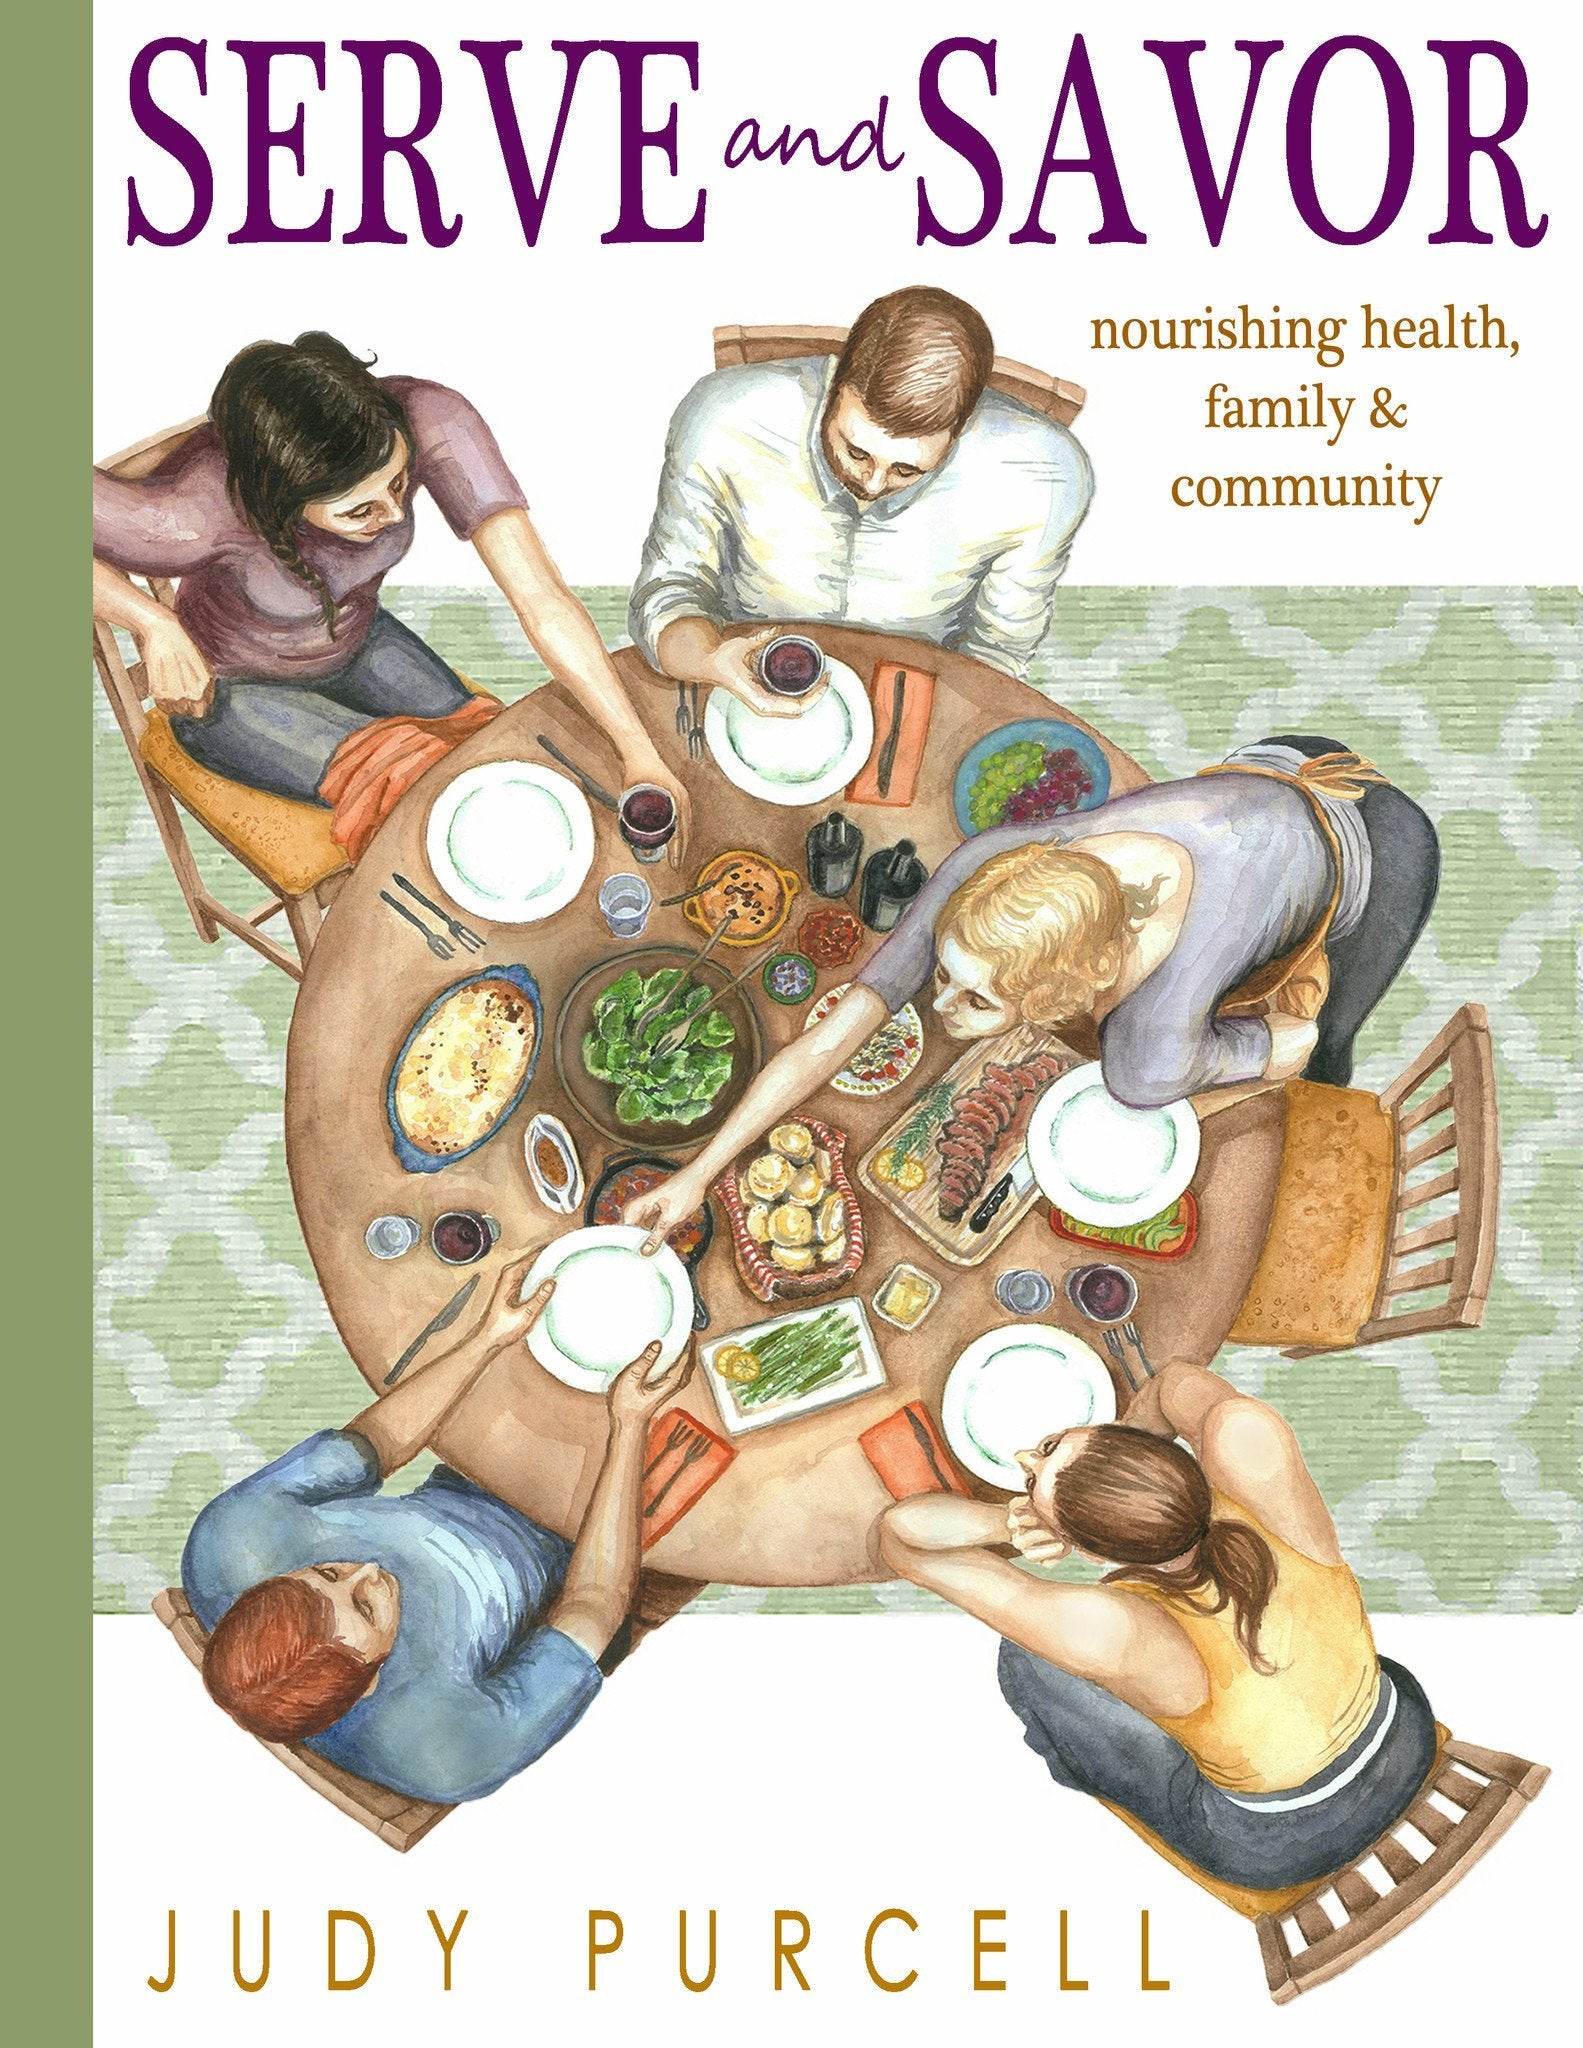 Serve and Savor E-book: Nourishing Health, Family & Community - Savoring Today Store